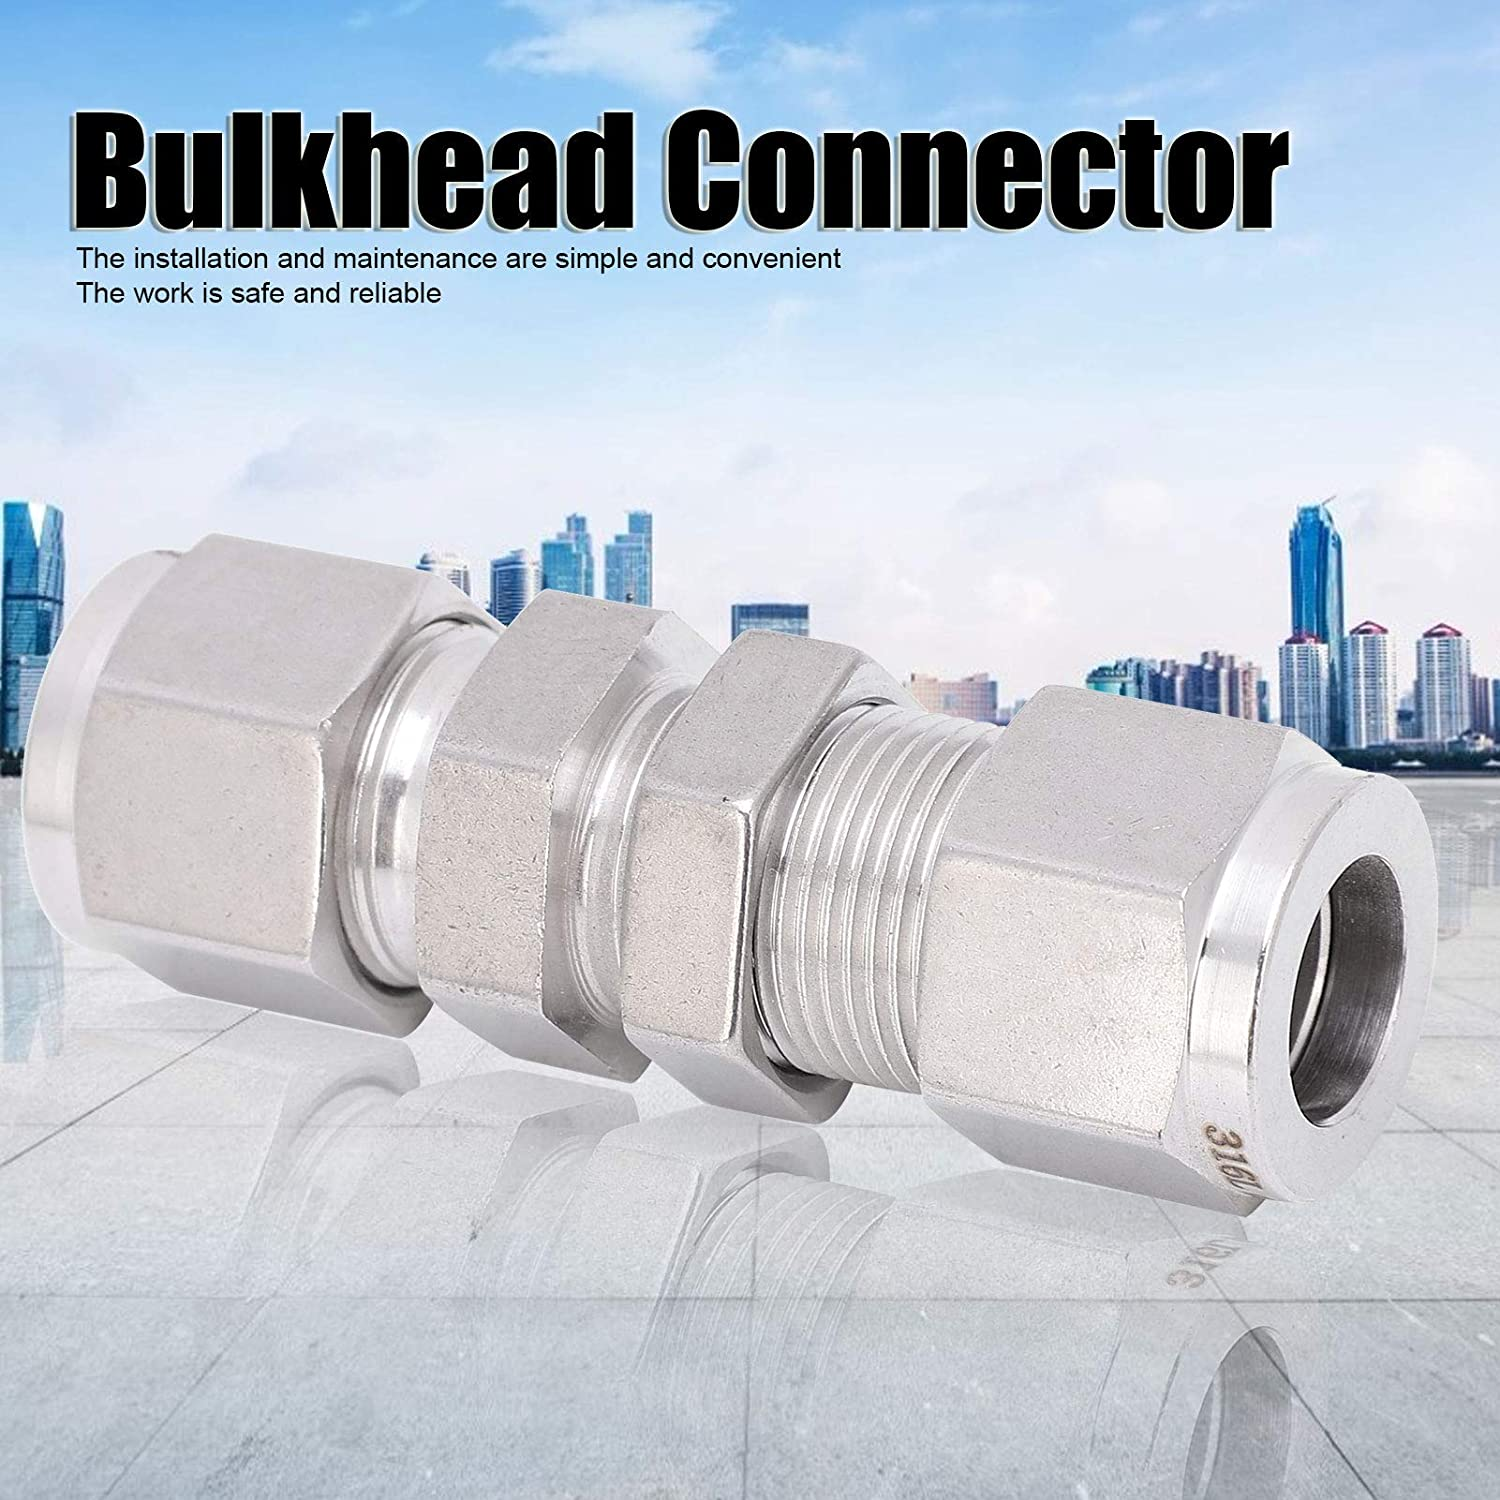 for Water Pipes Gas Pipes Convenient Practical Double Ferrule Bulkhead Connector Ф1//2 Safe Reliable Durable Bulkhead Connector